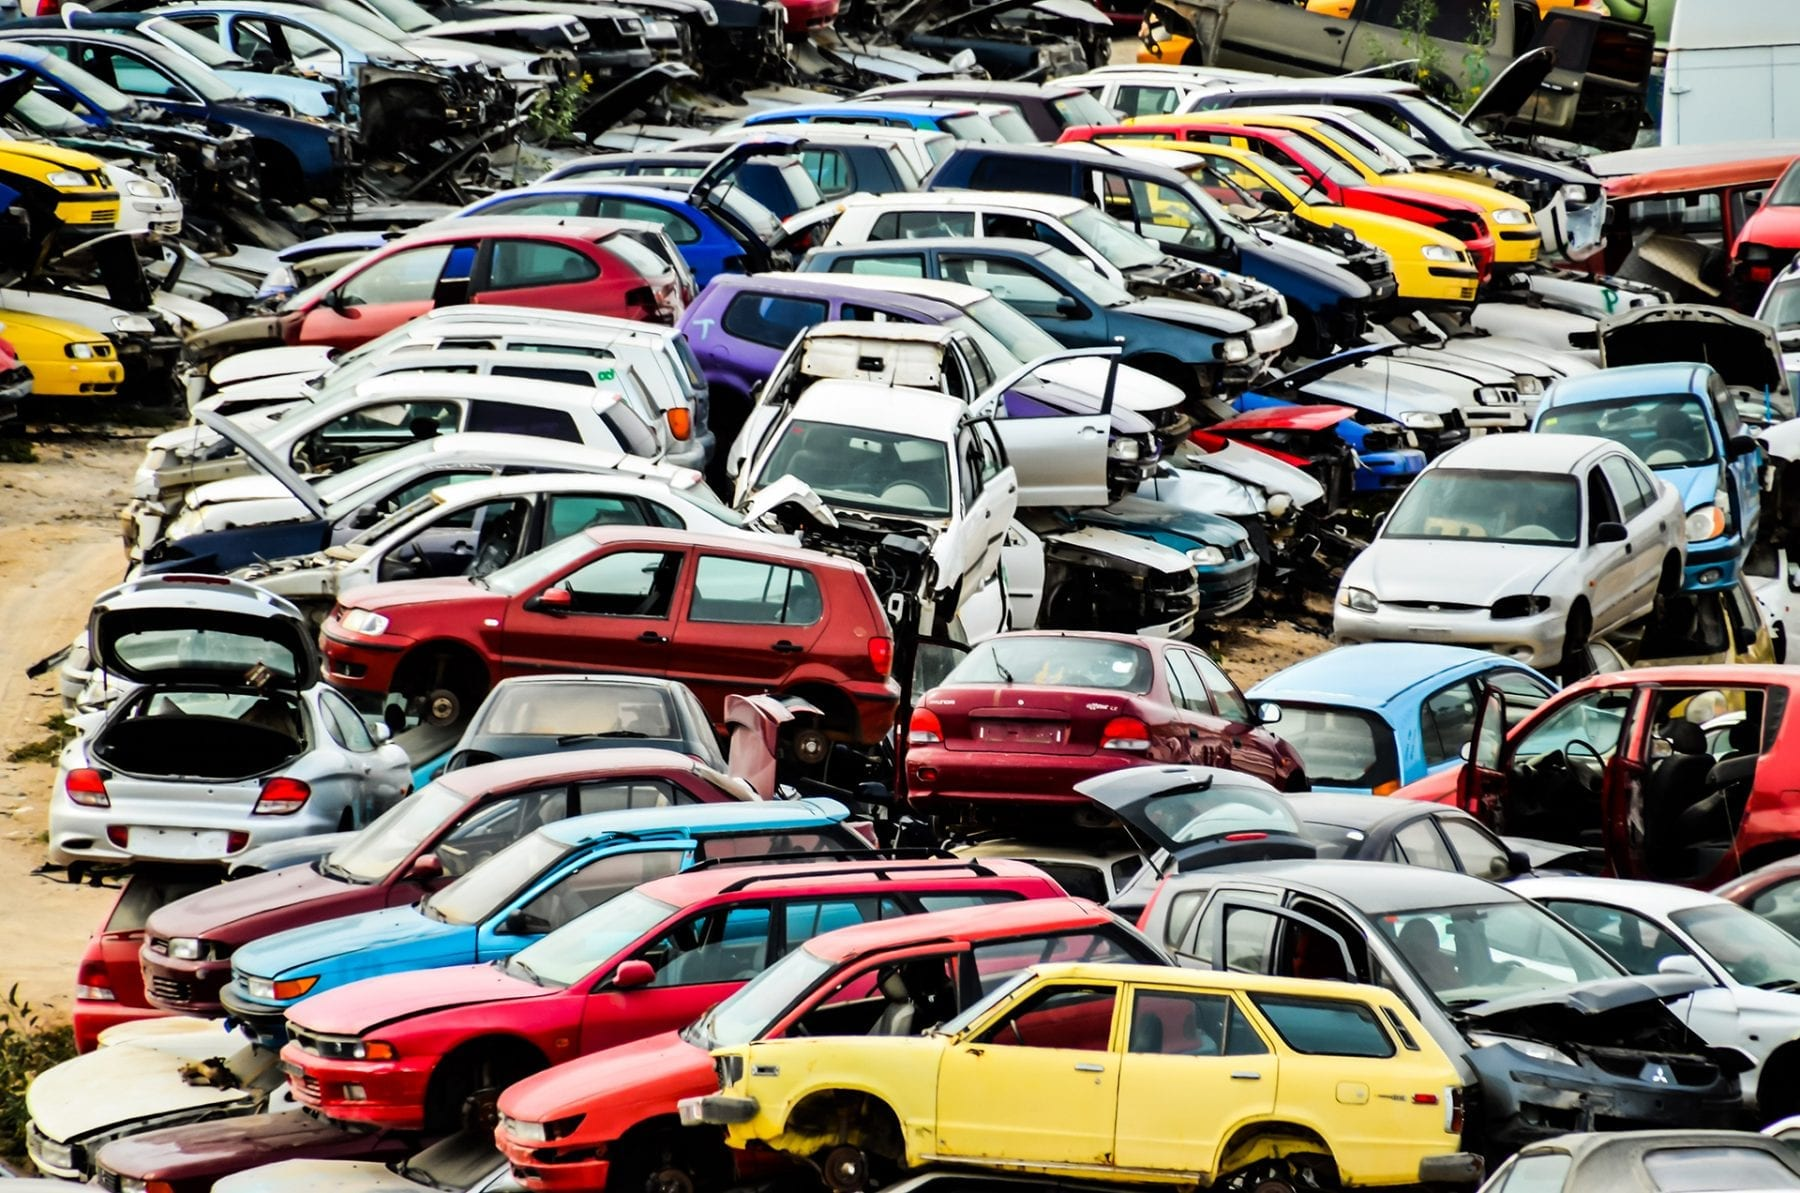 Why Should You Recycle Your Vehicle?